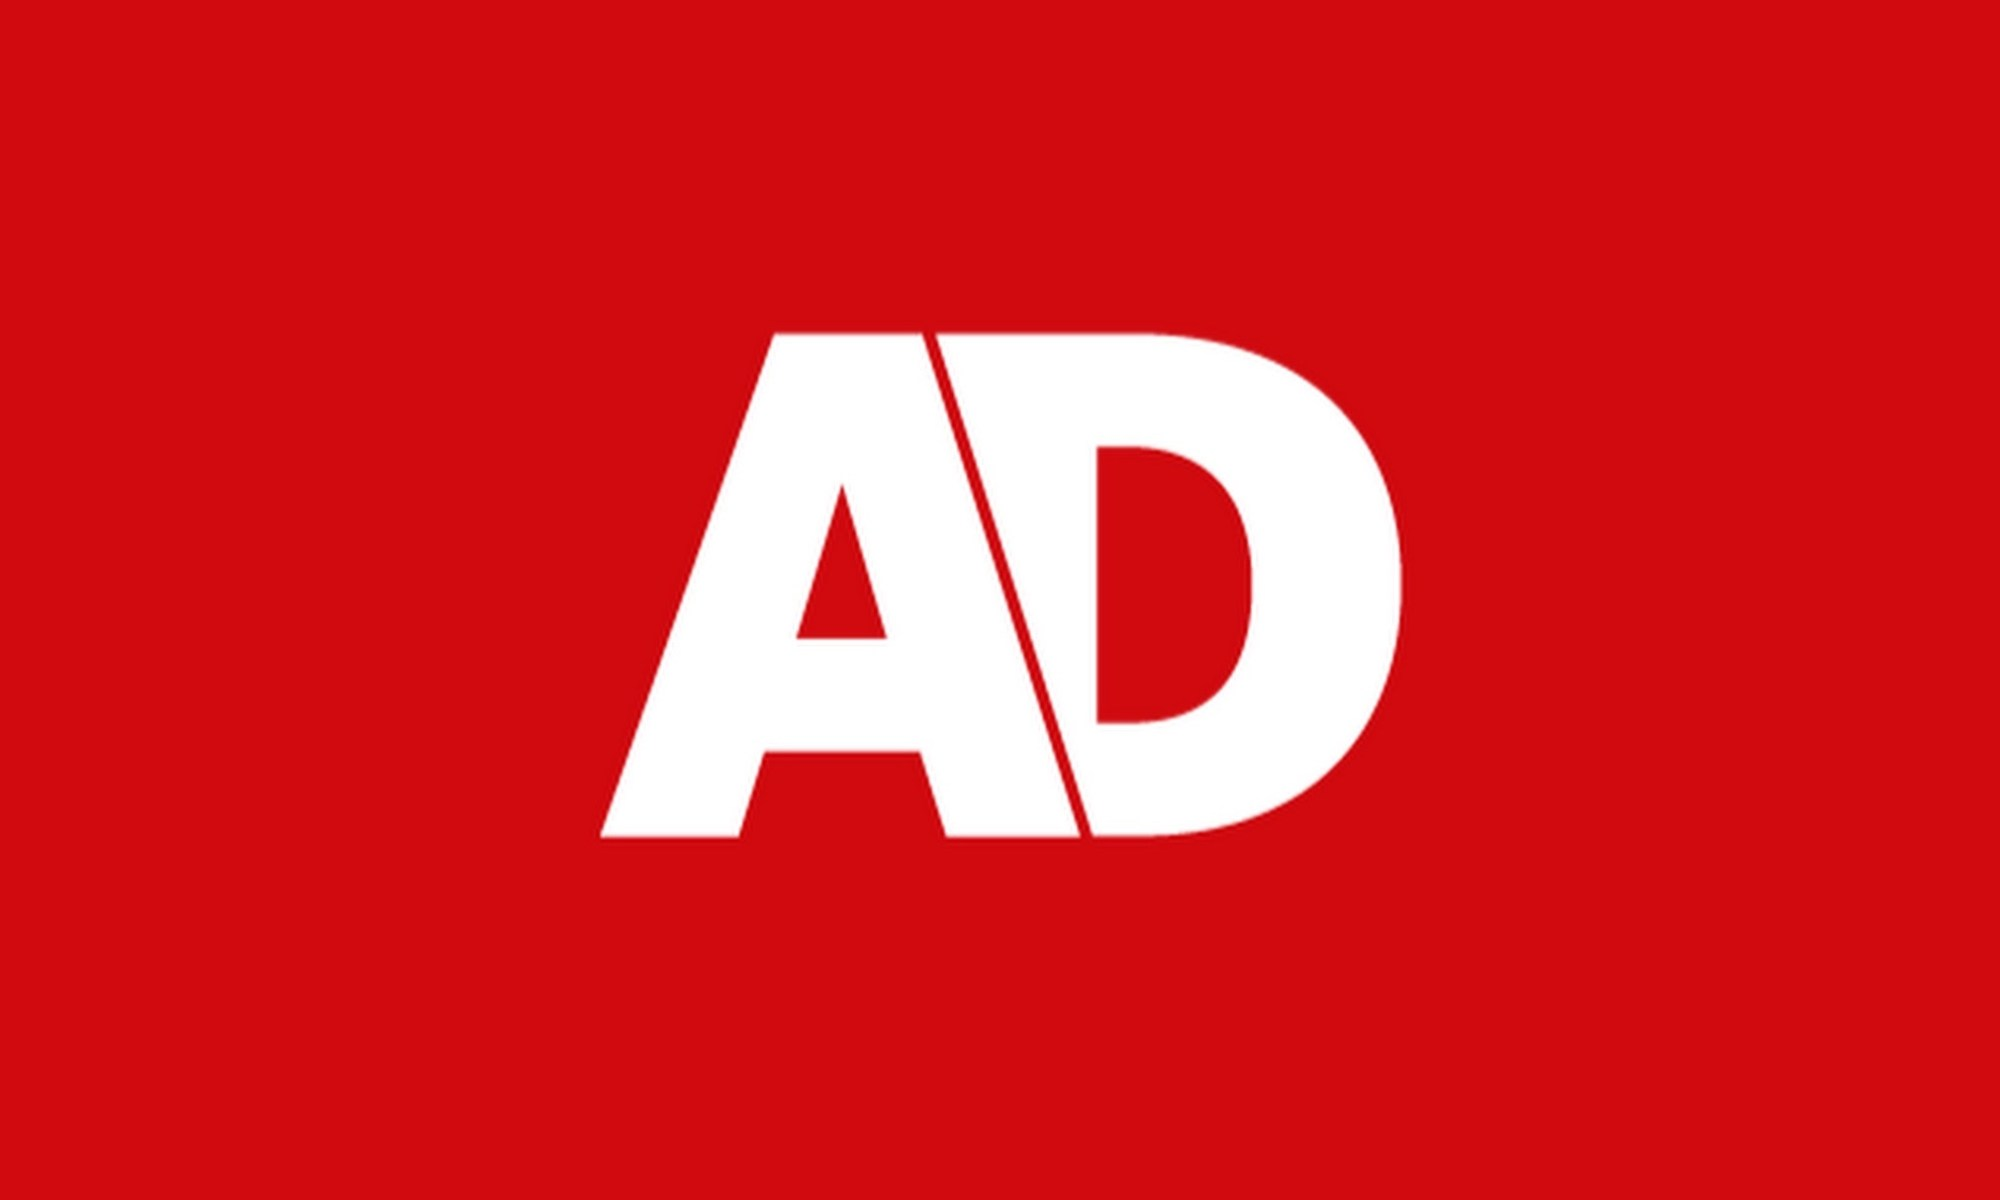 AD newspaper logo on red background